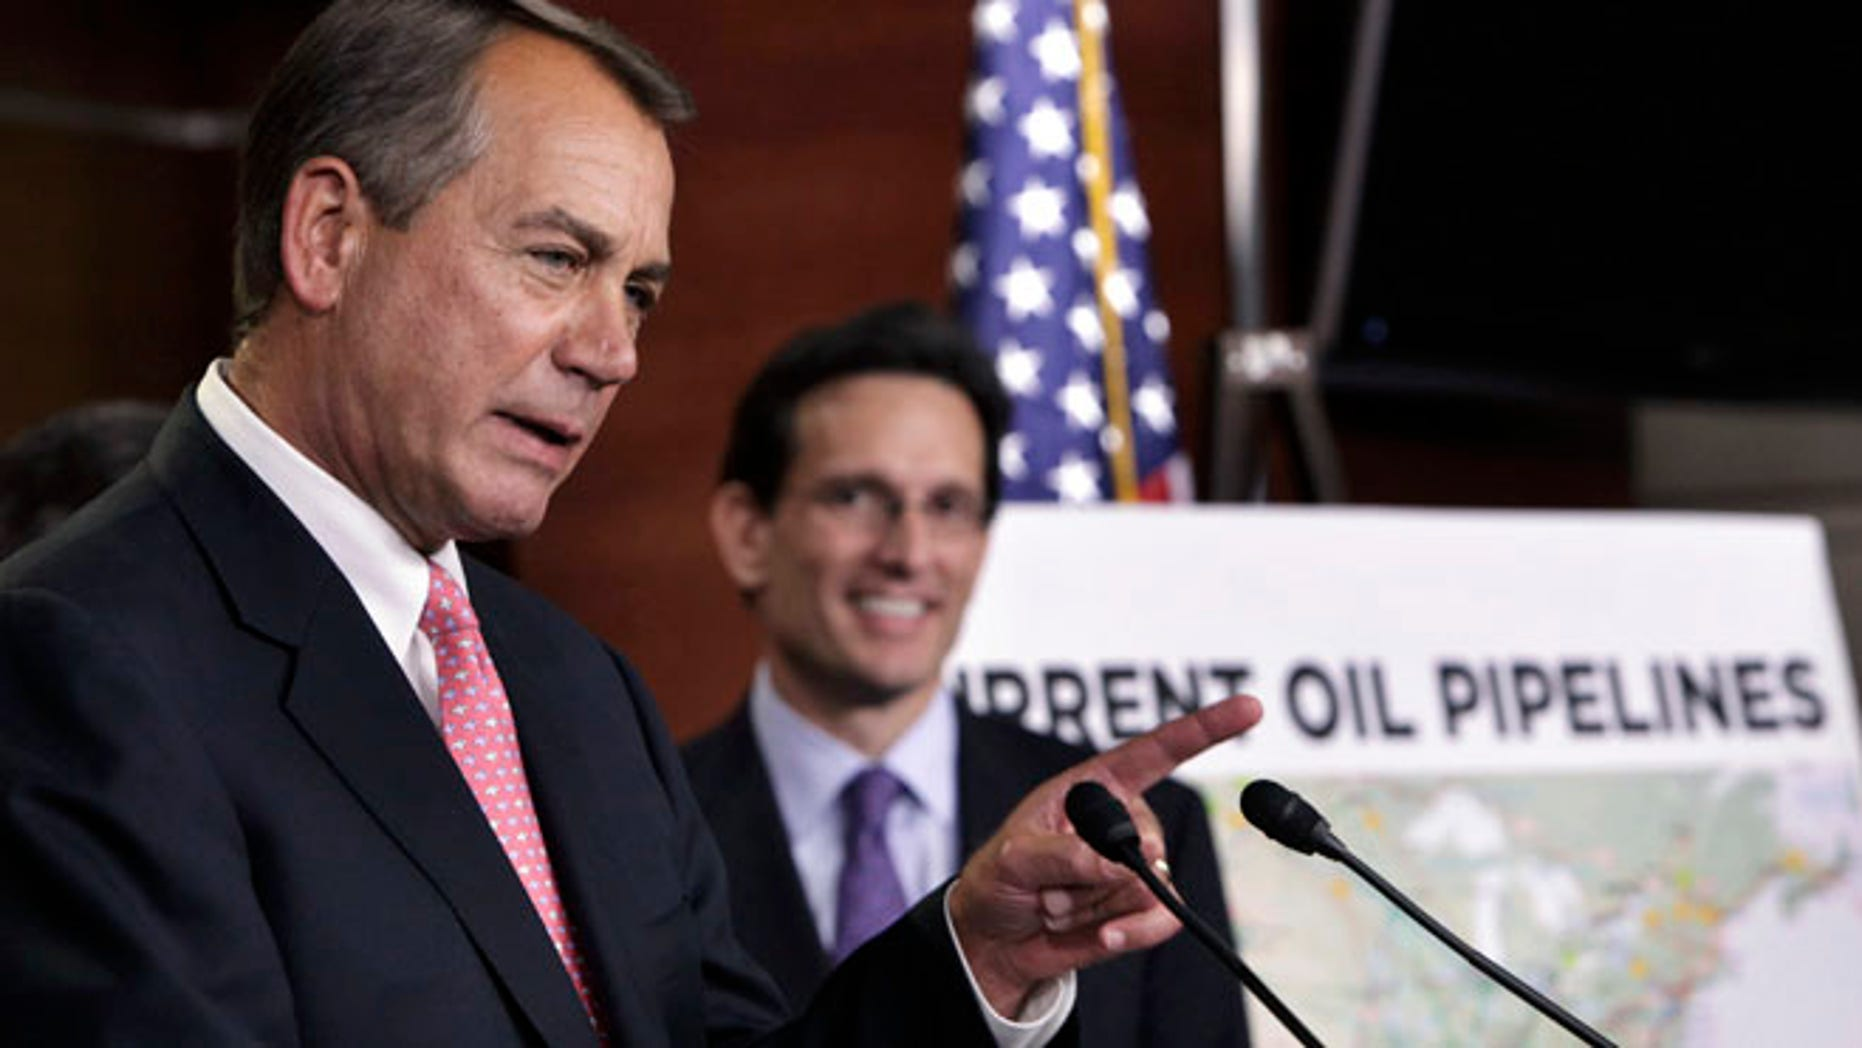 FILE: January 18, 2012: House Speaker John Boehner and House Majority Leader Eric Cantor at Capitol Hill news conference about the Keystone XL pipeline.